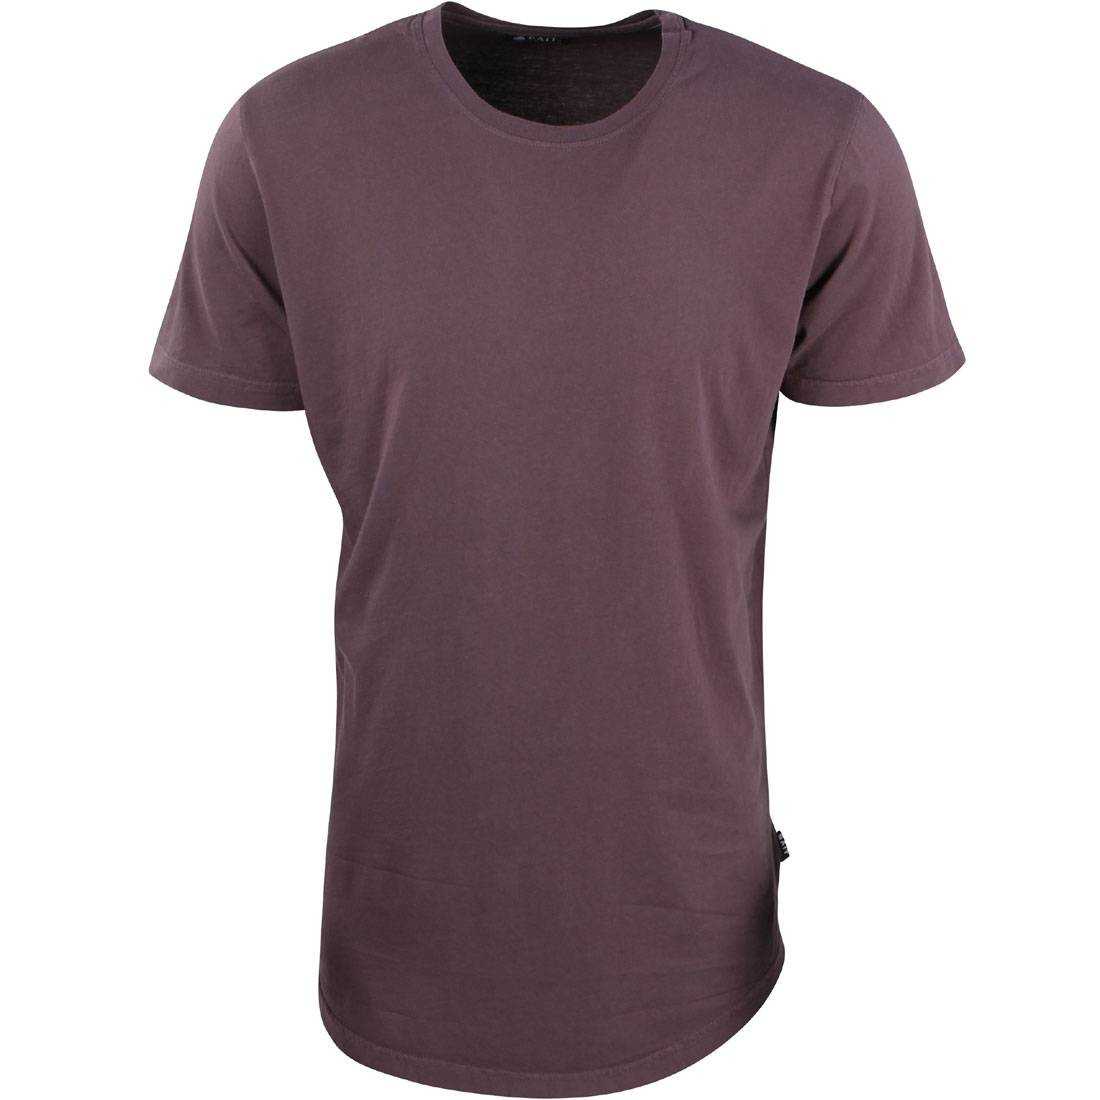 3c62ded0891 BAIT Men Premium Scallop Tee - Made In Los Angeles (purple / plum kitten)